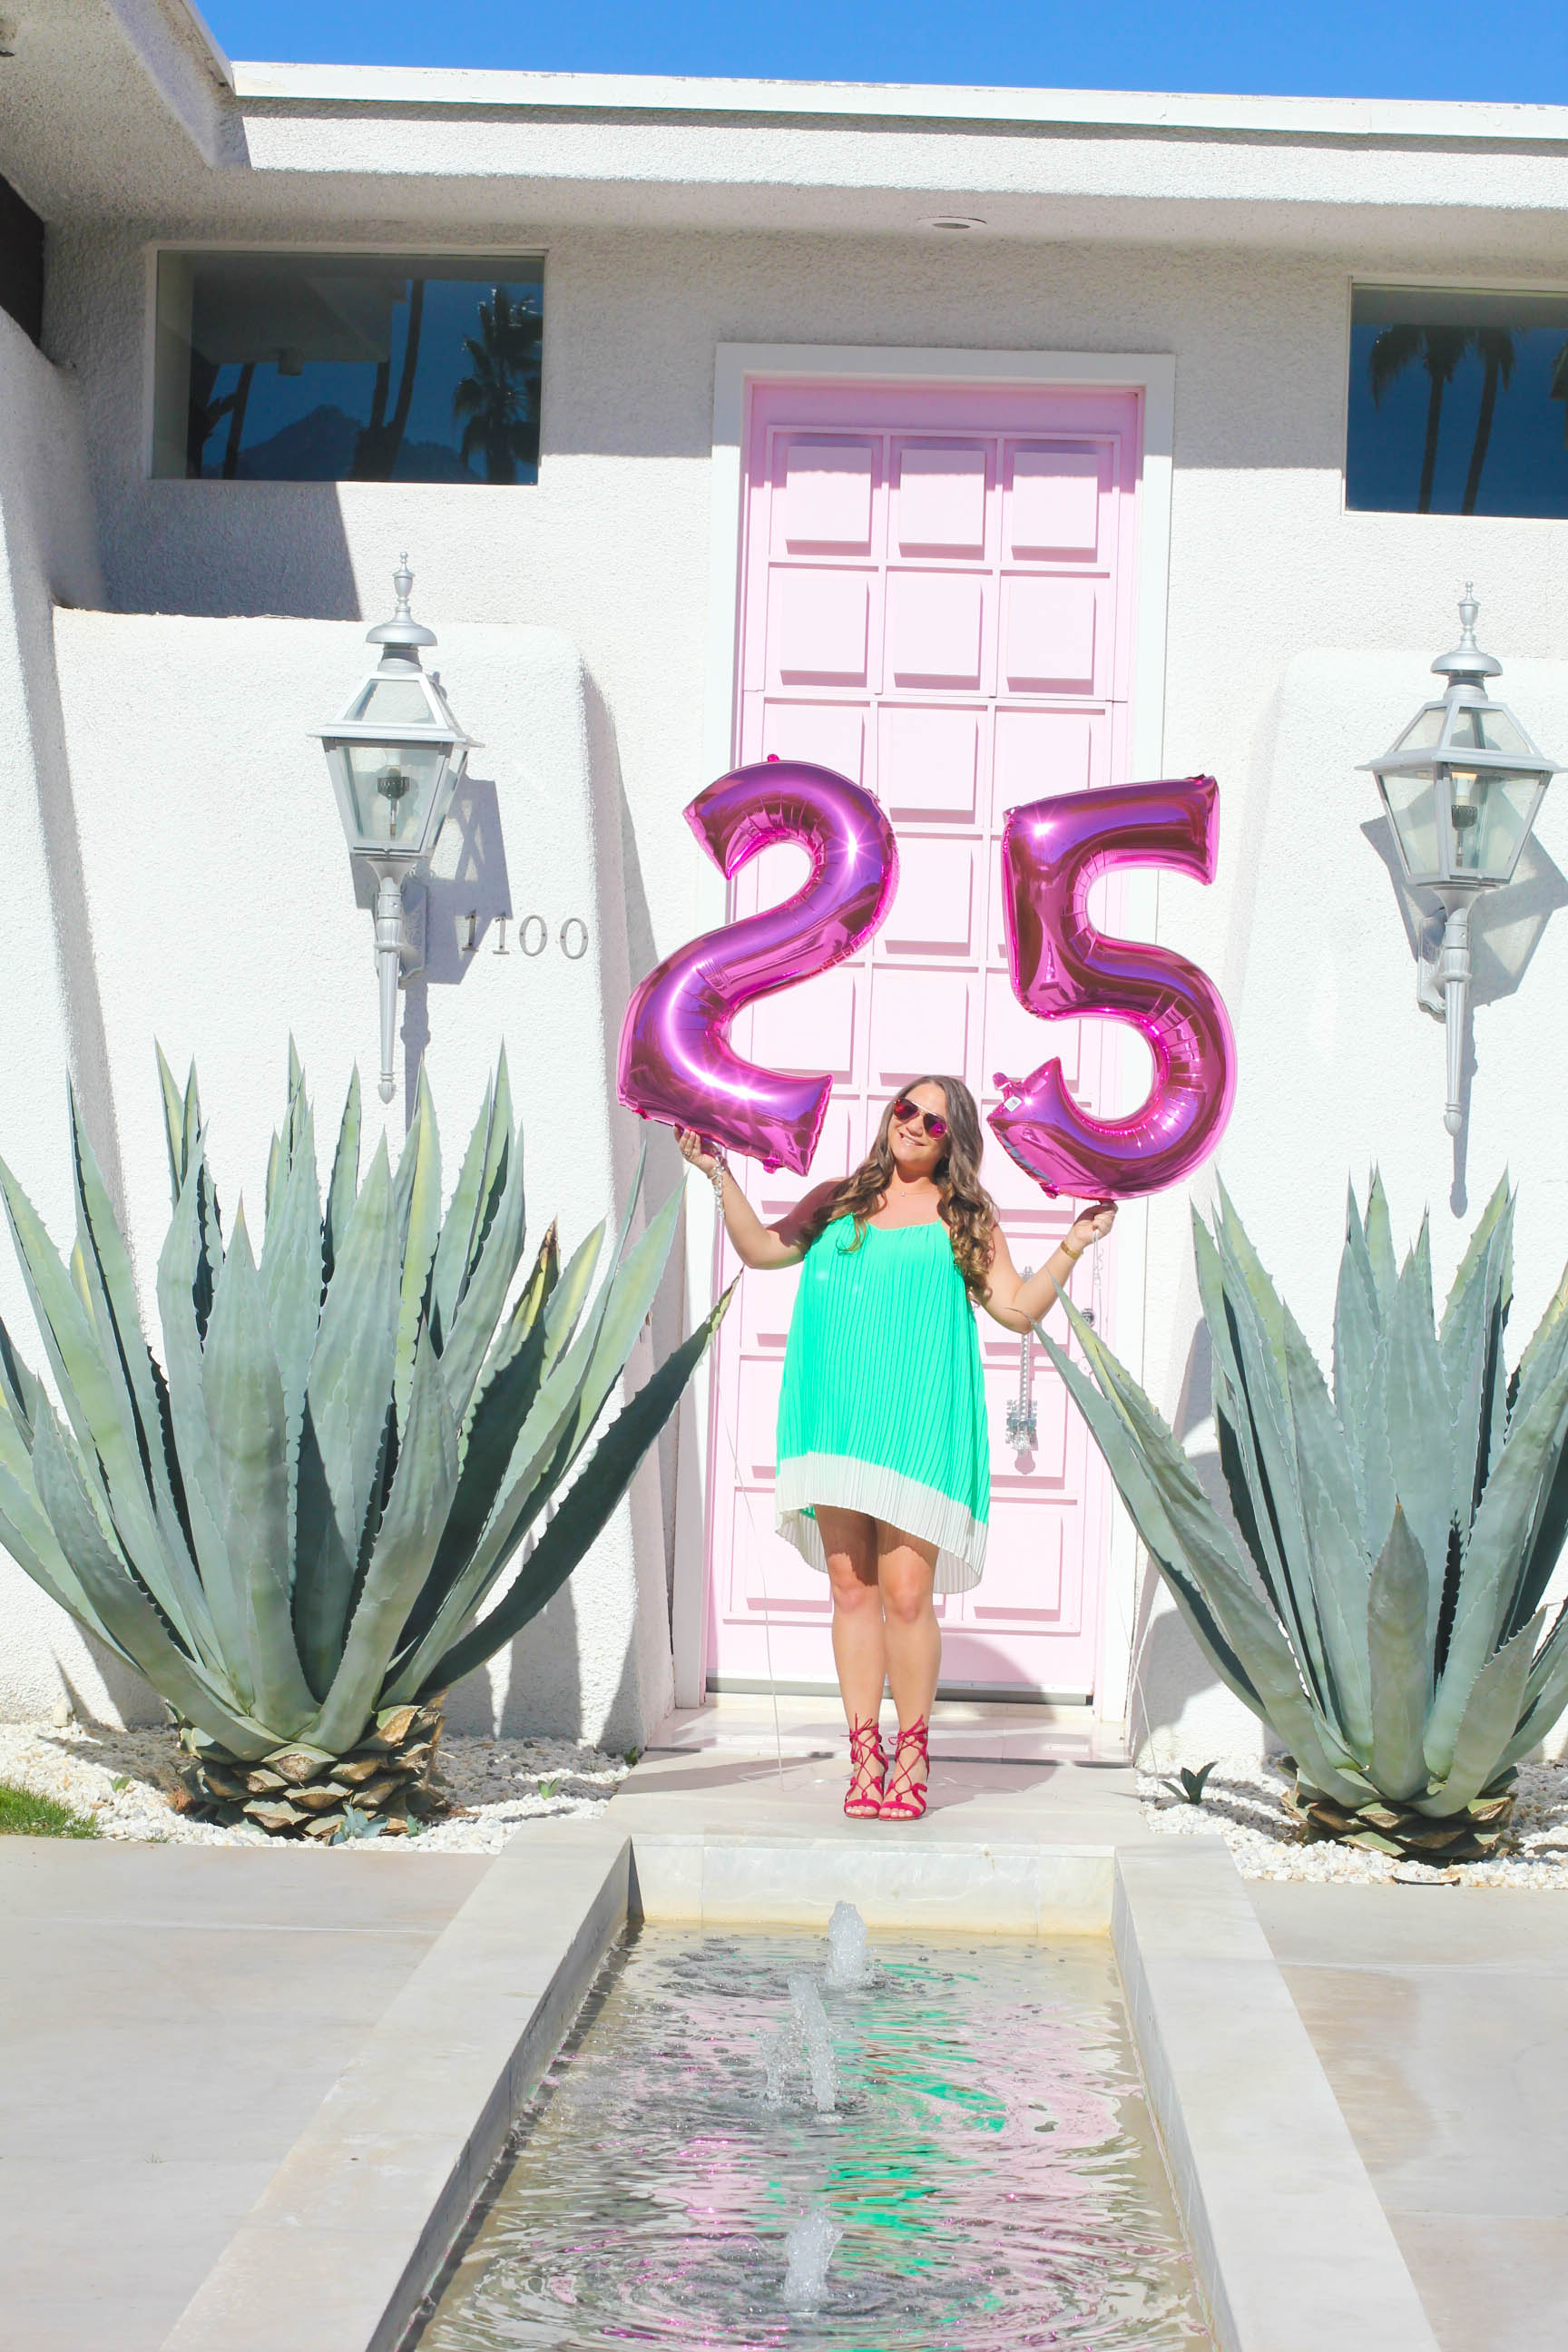 gianvito rossi lace up sandals, gianvito rossi, barneys ny, barneys warehouse sale, barneys sale, pink aviators, green dress, palm springs, palm springs pink door, pink door, instagram doors, wall charades, instagram doors, i have a thing with doors, missyonmadison, melissa tierney, missyonmadison instagram, la blogger, blogger style, turning 25, 25 things, happy birthday, birthday, birthday style, fashion blogger, mint green dress, green pleated dress, fuschia heels,